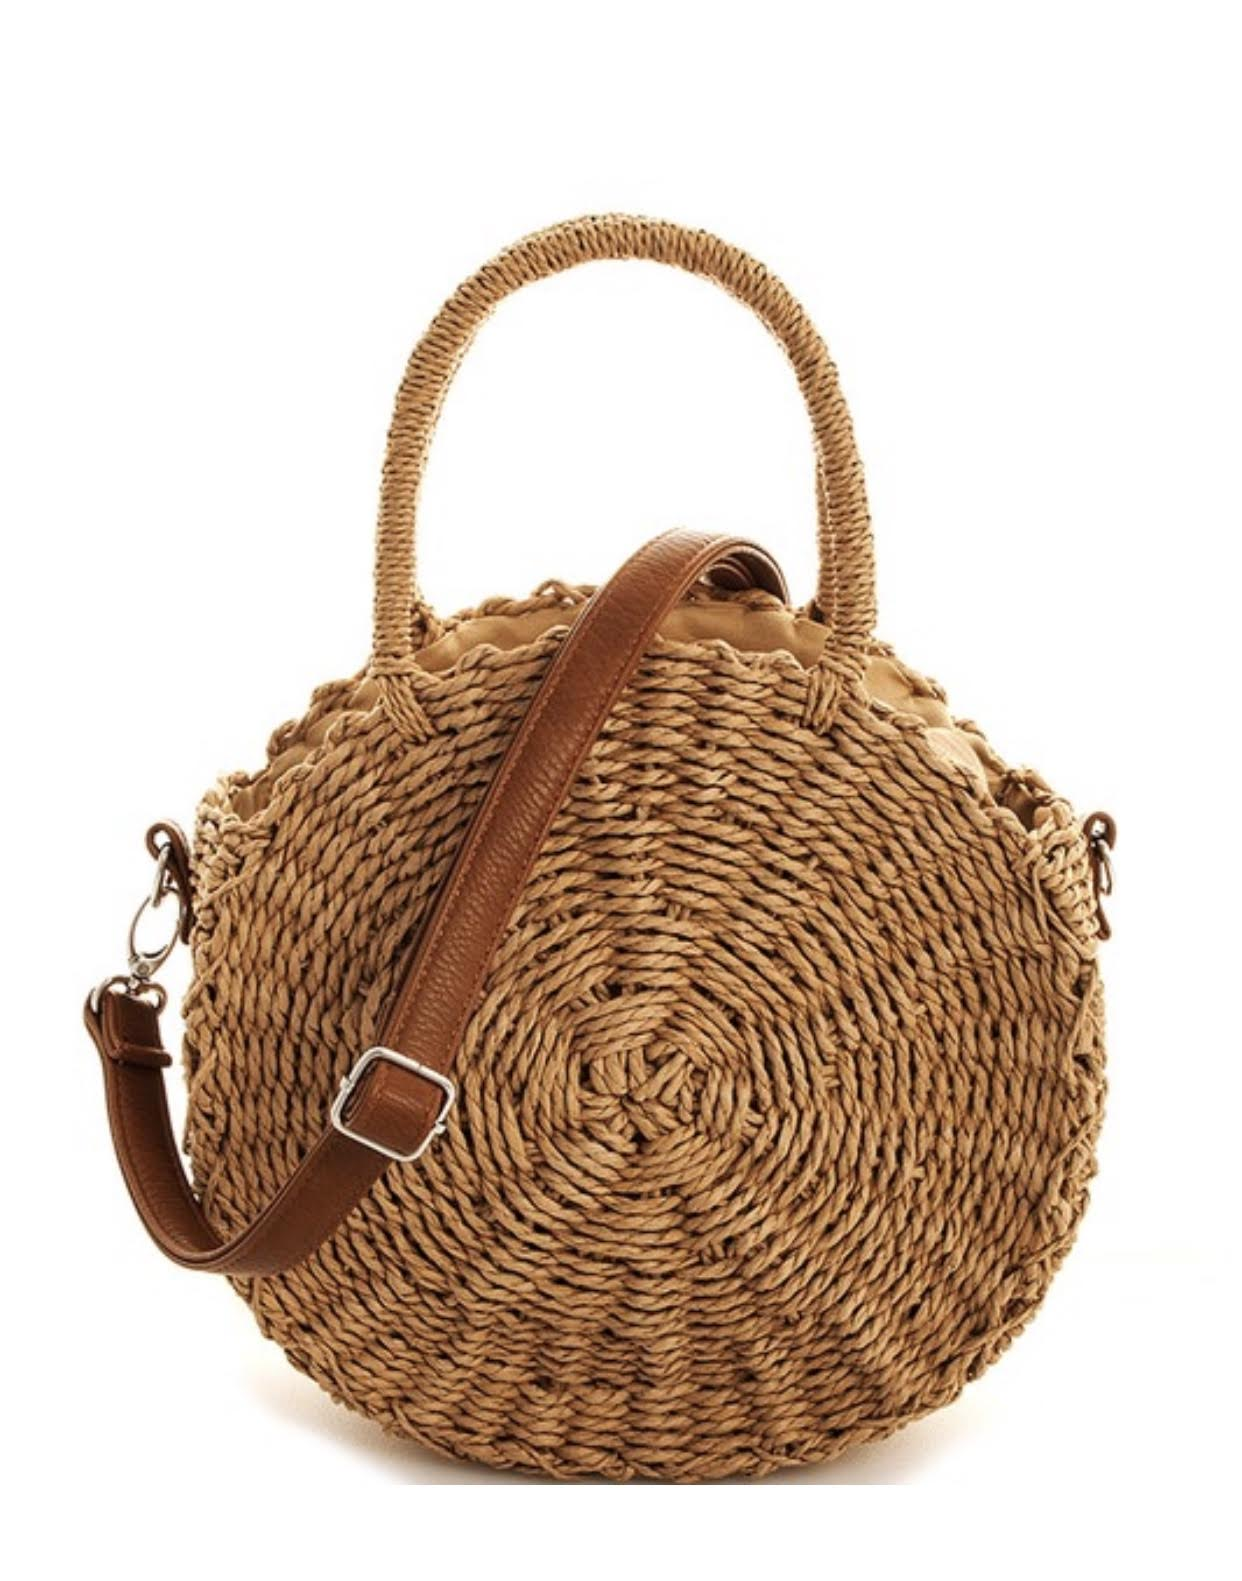 Woven Wicker Circle Purse with Handle and Strap